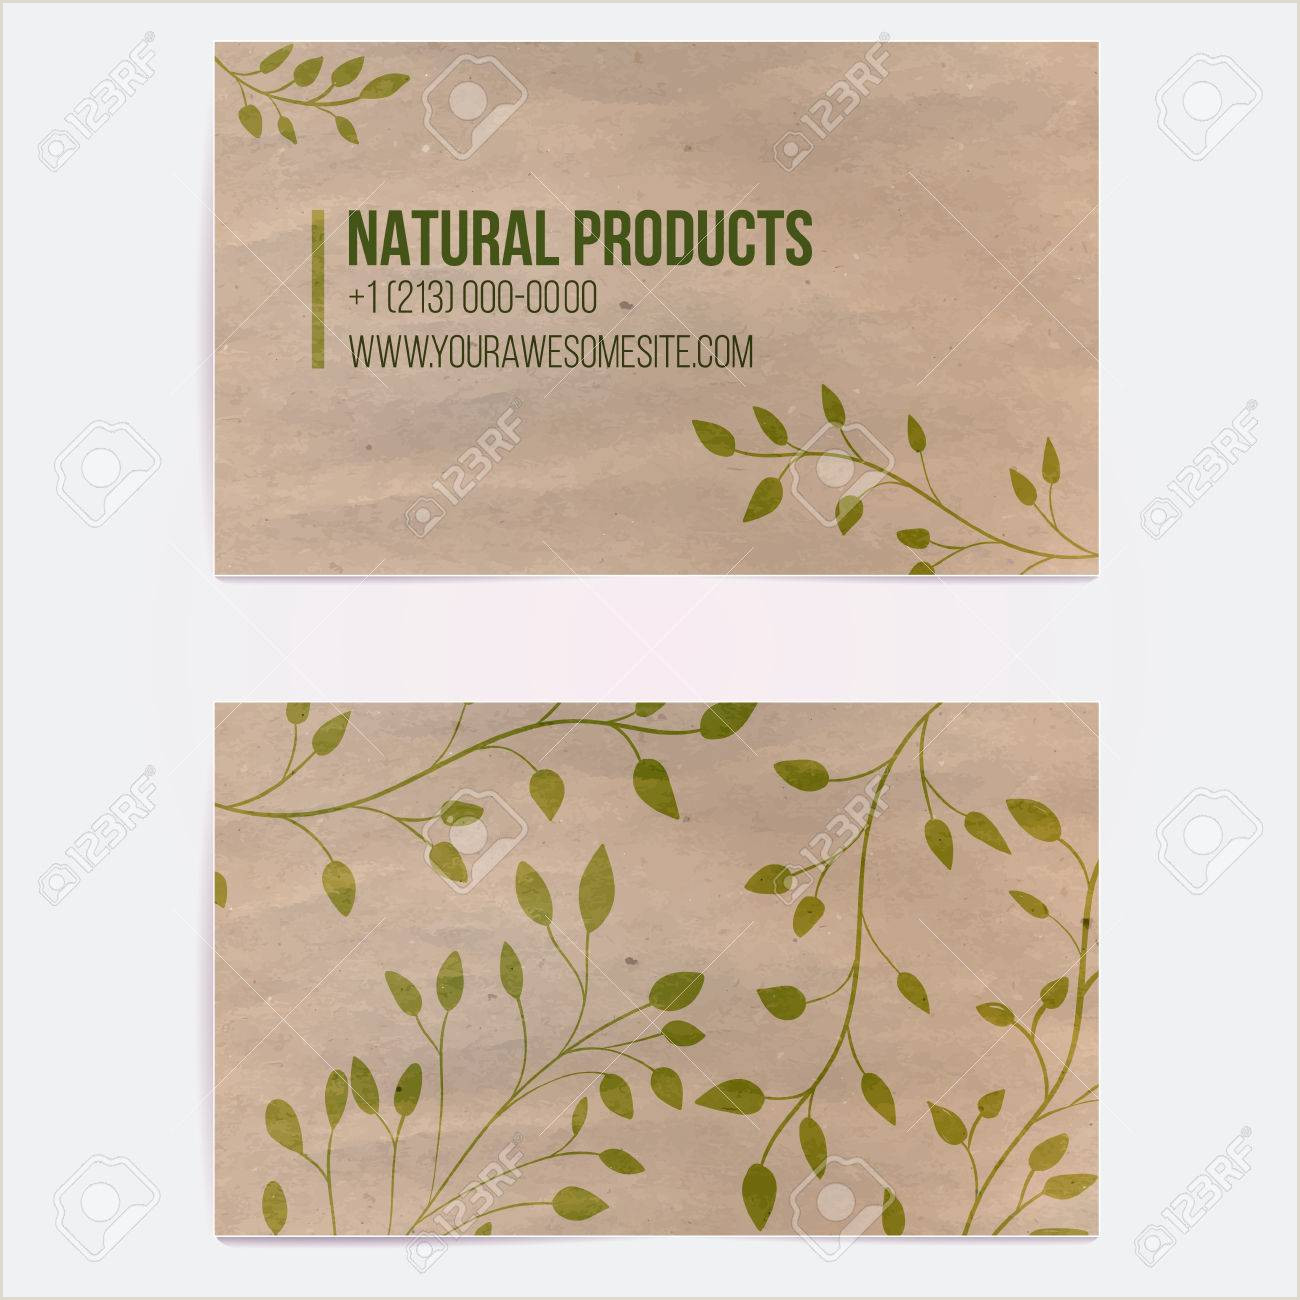 Unique Business Cards Tokens Two Sided Business Card For Natural Cosmetics Store Or Other